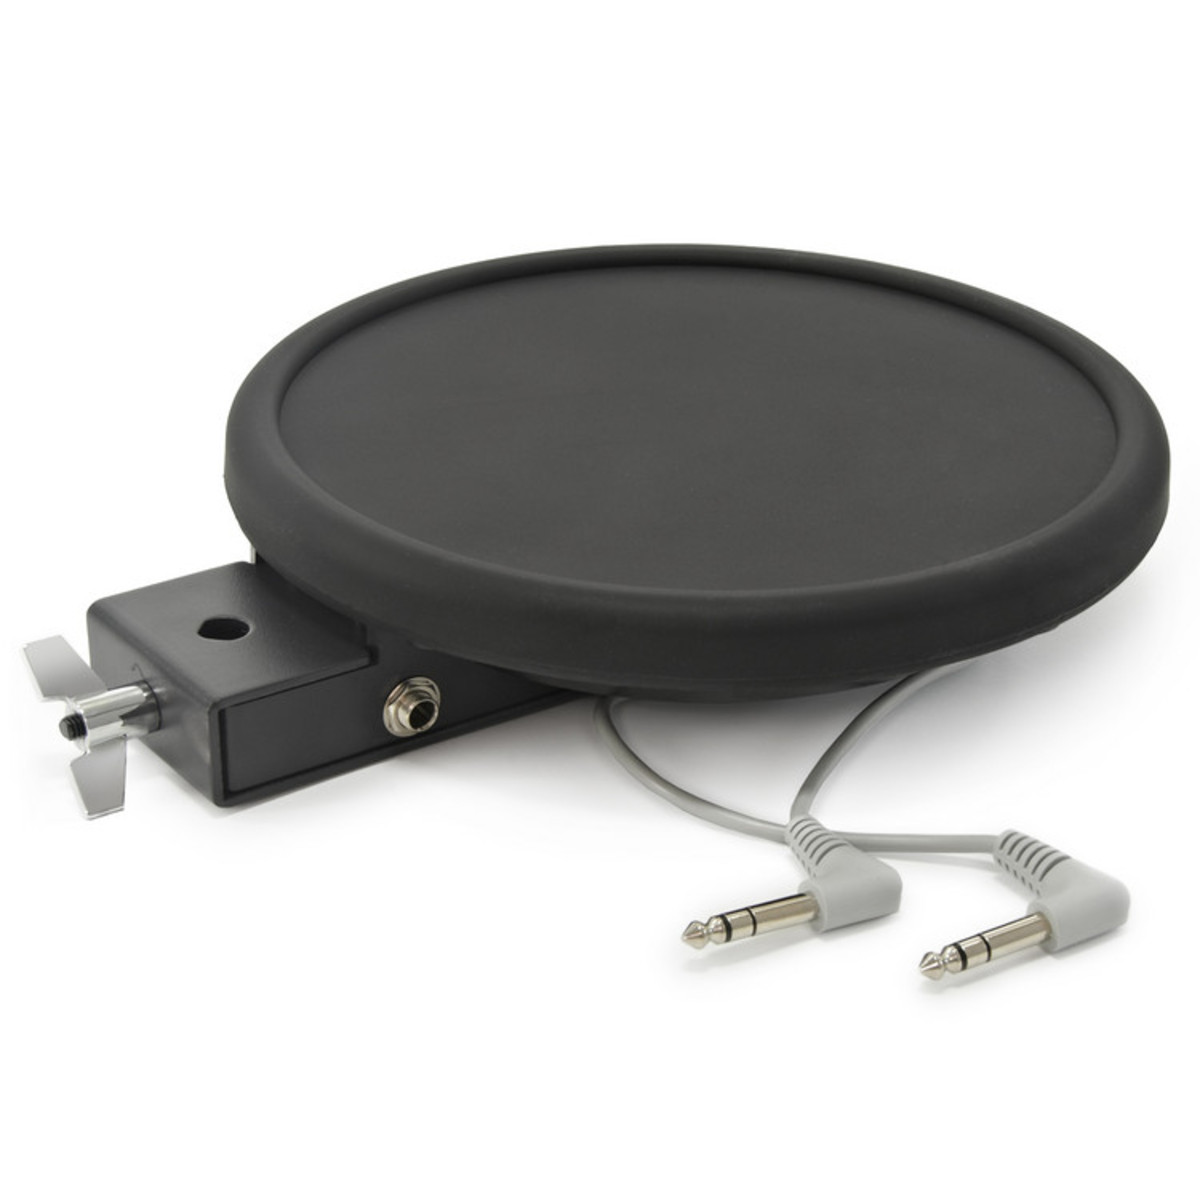 digital drums dual zone electronic drum pad b stock at gear4music. Black Bedroom Furniture Sets. Home Design Ideas